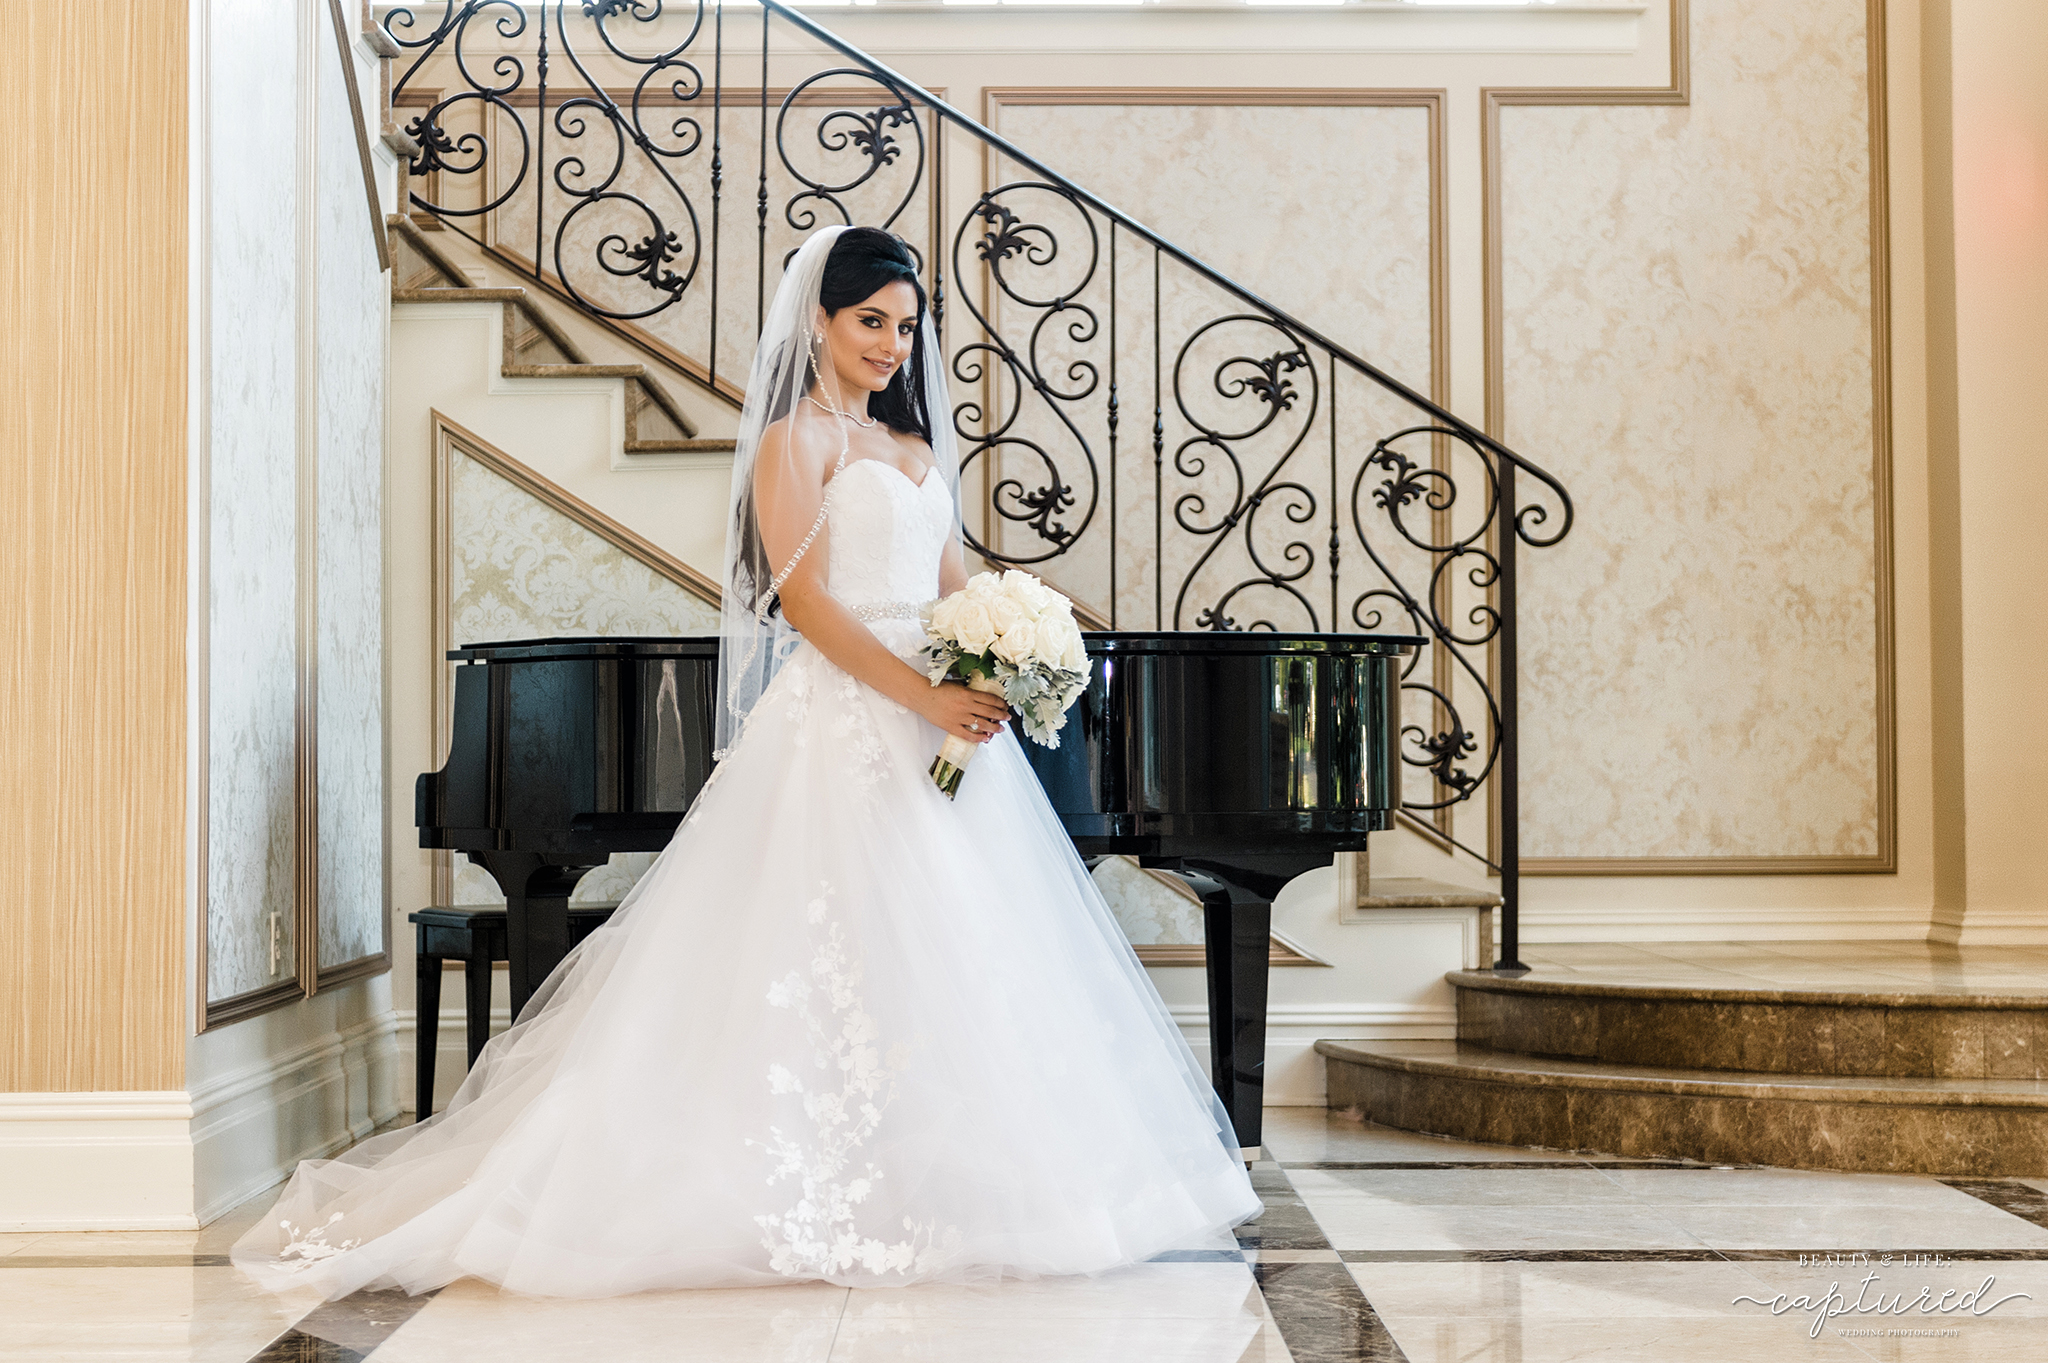 Beautyandlifecaptured_Ista_wedd-45.jpg